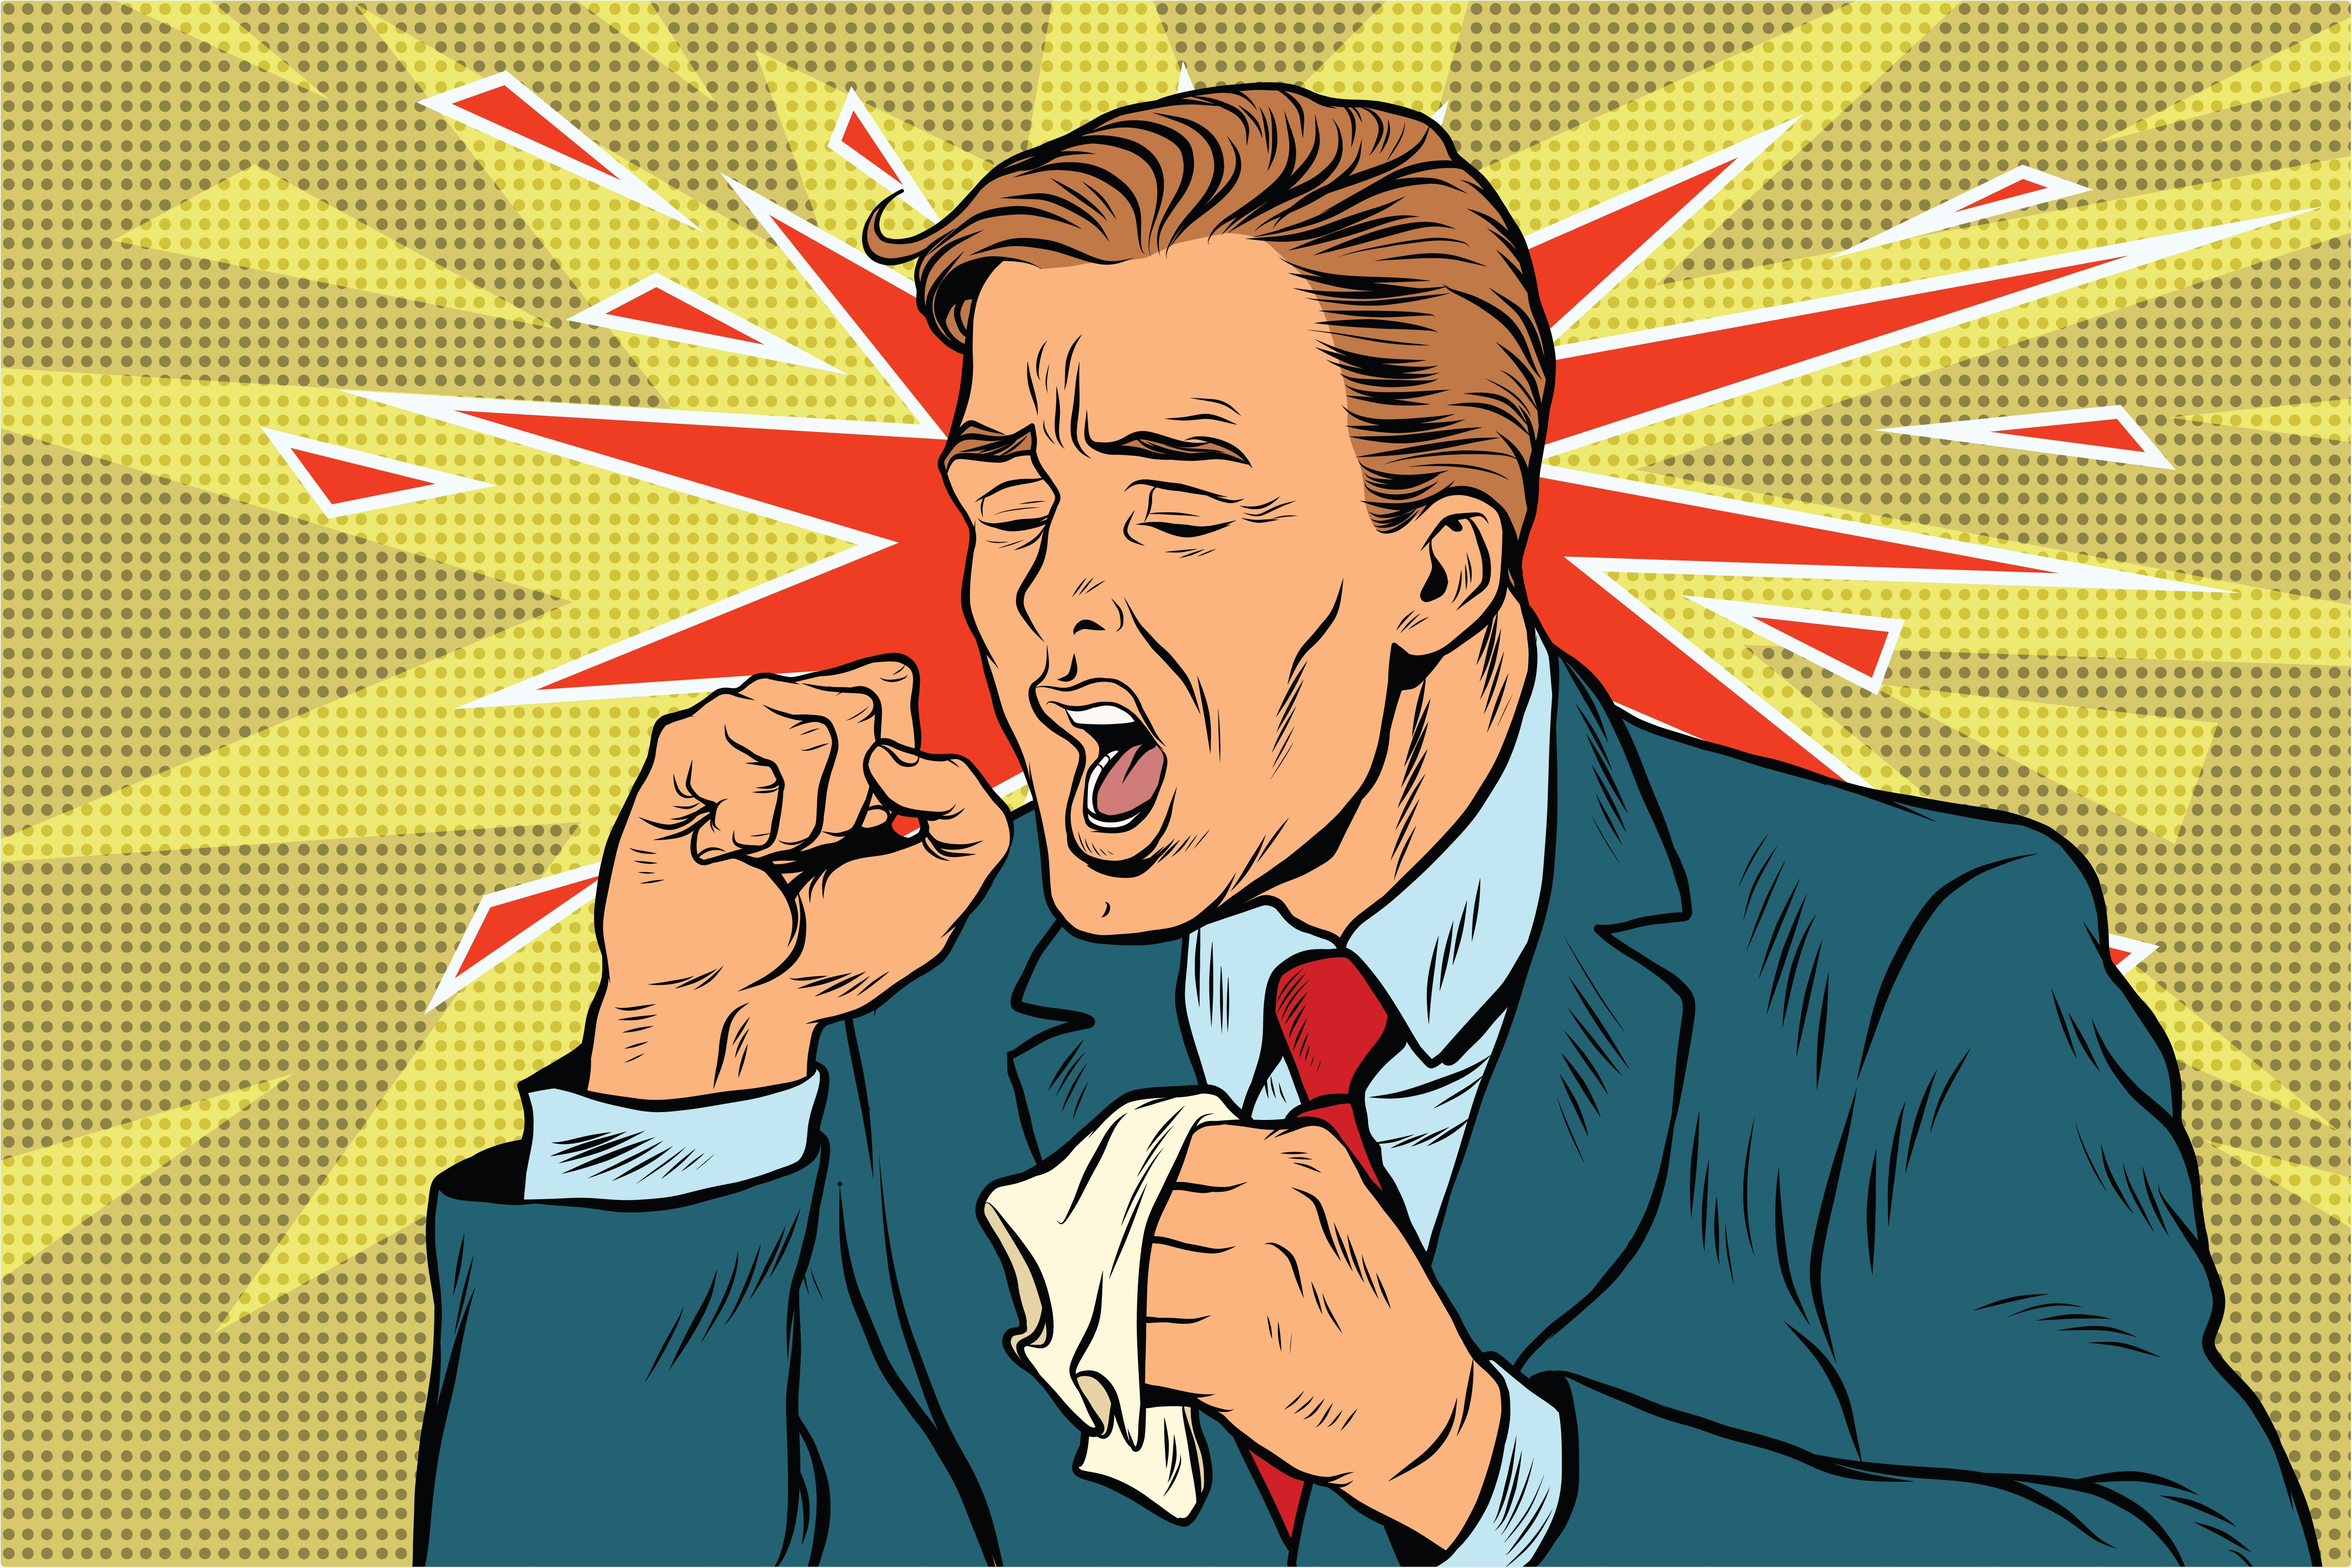 Research: COVID-19 Artificial Intelligence Diagnosis using only Cough Recordings. Image Credit: studiostoks / Shutterstock